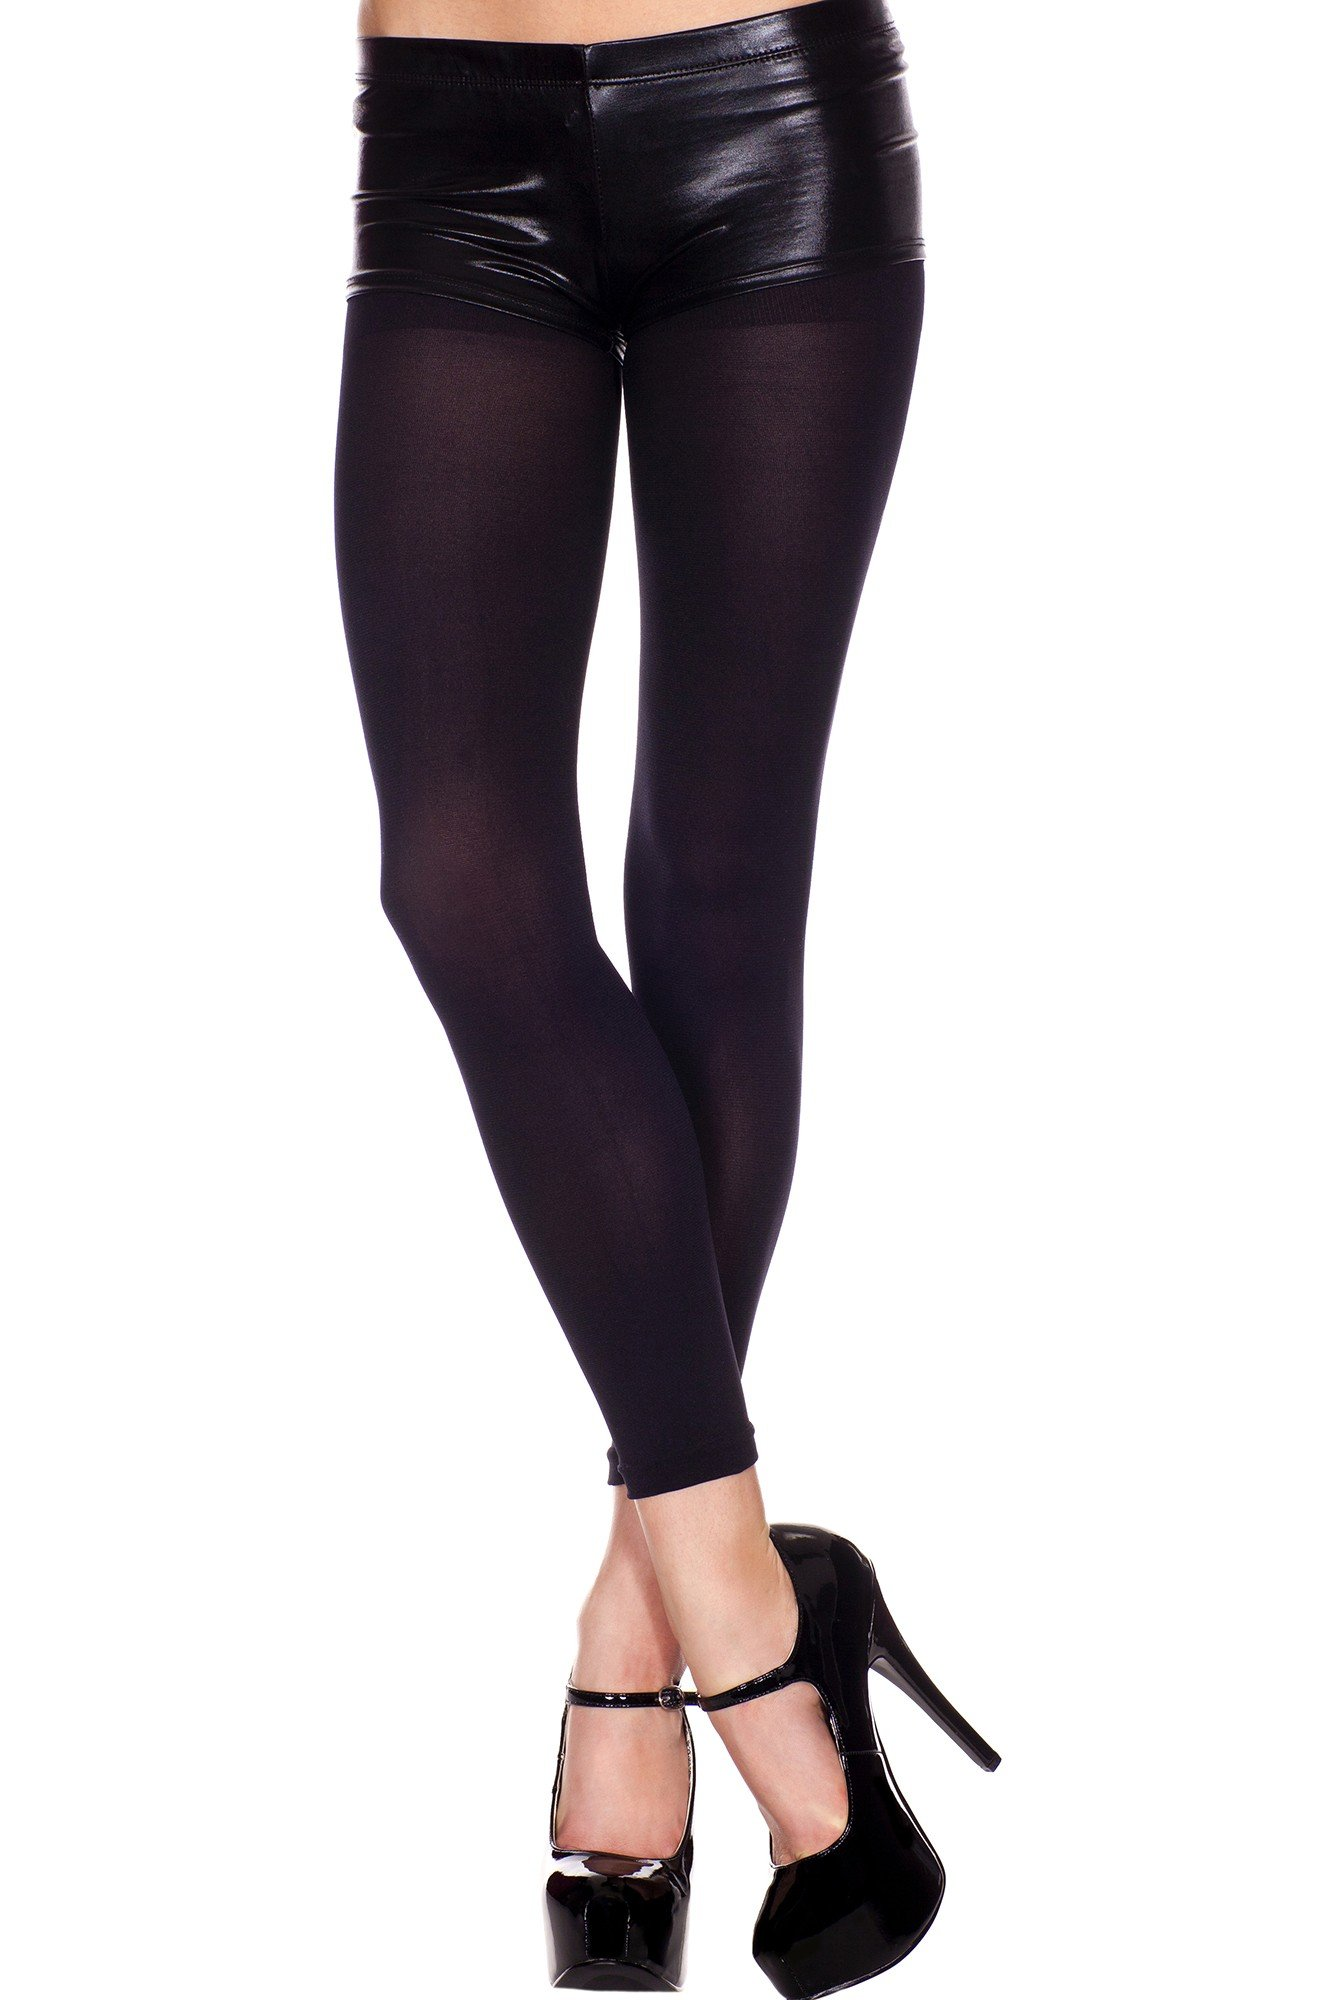 Solid Opaque Black Footless Tights Dance Wear Toe-less Hosiery ML 35797